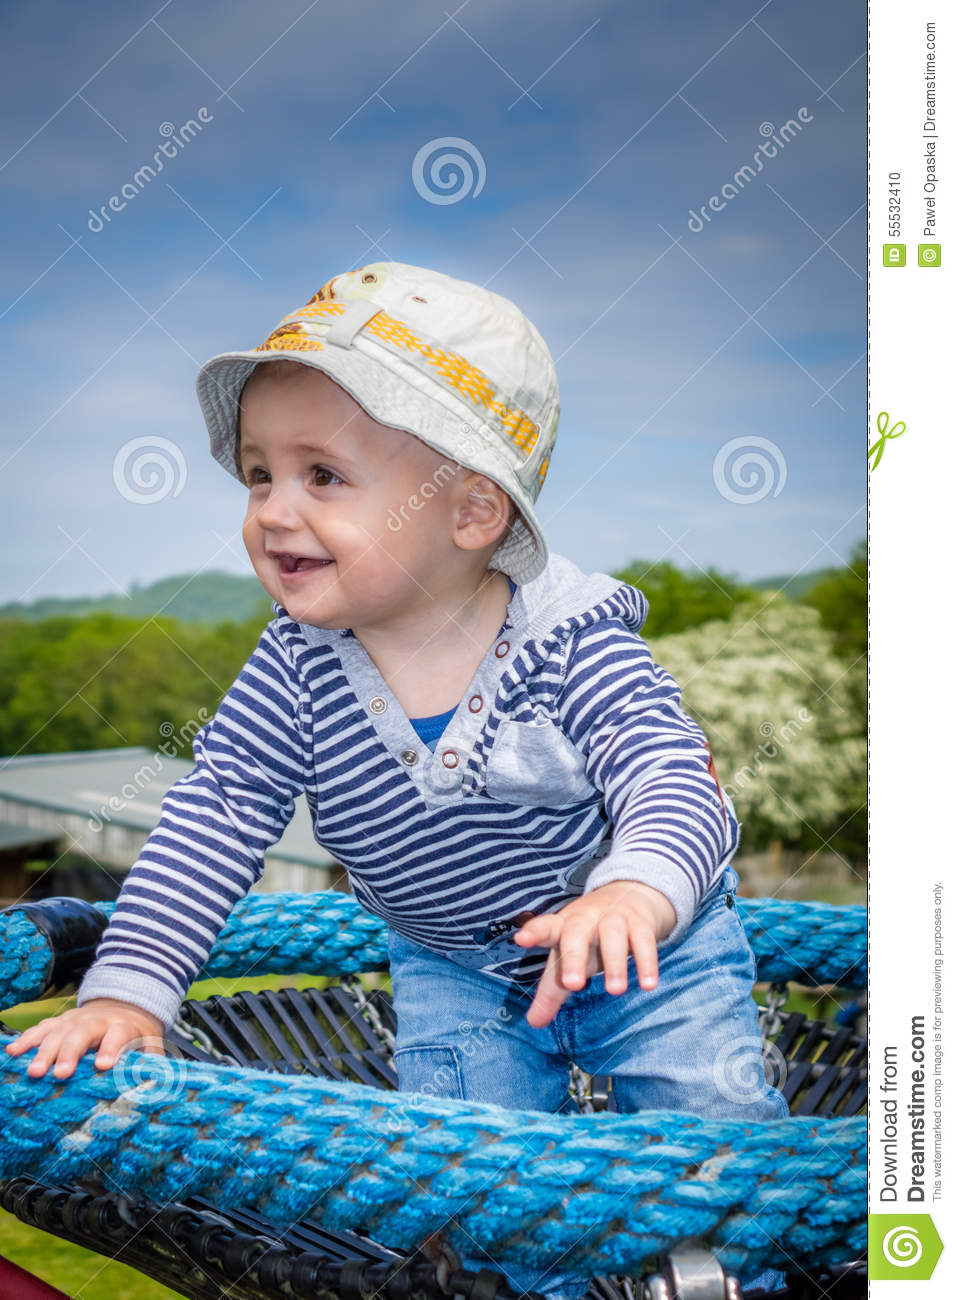 187ac2fa8 Cute little baby boy standing on a small carousel in the park playground.  More similar stock images